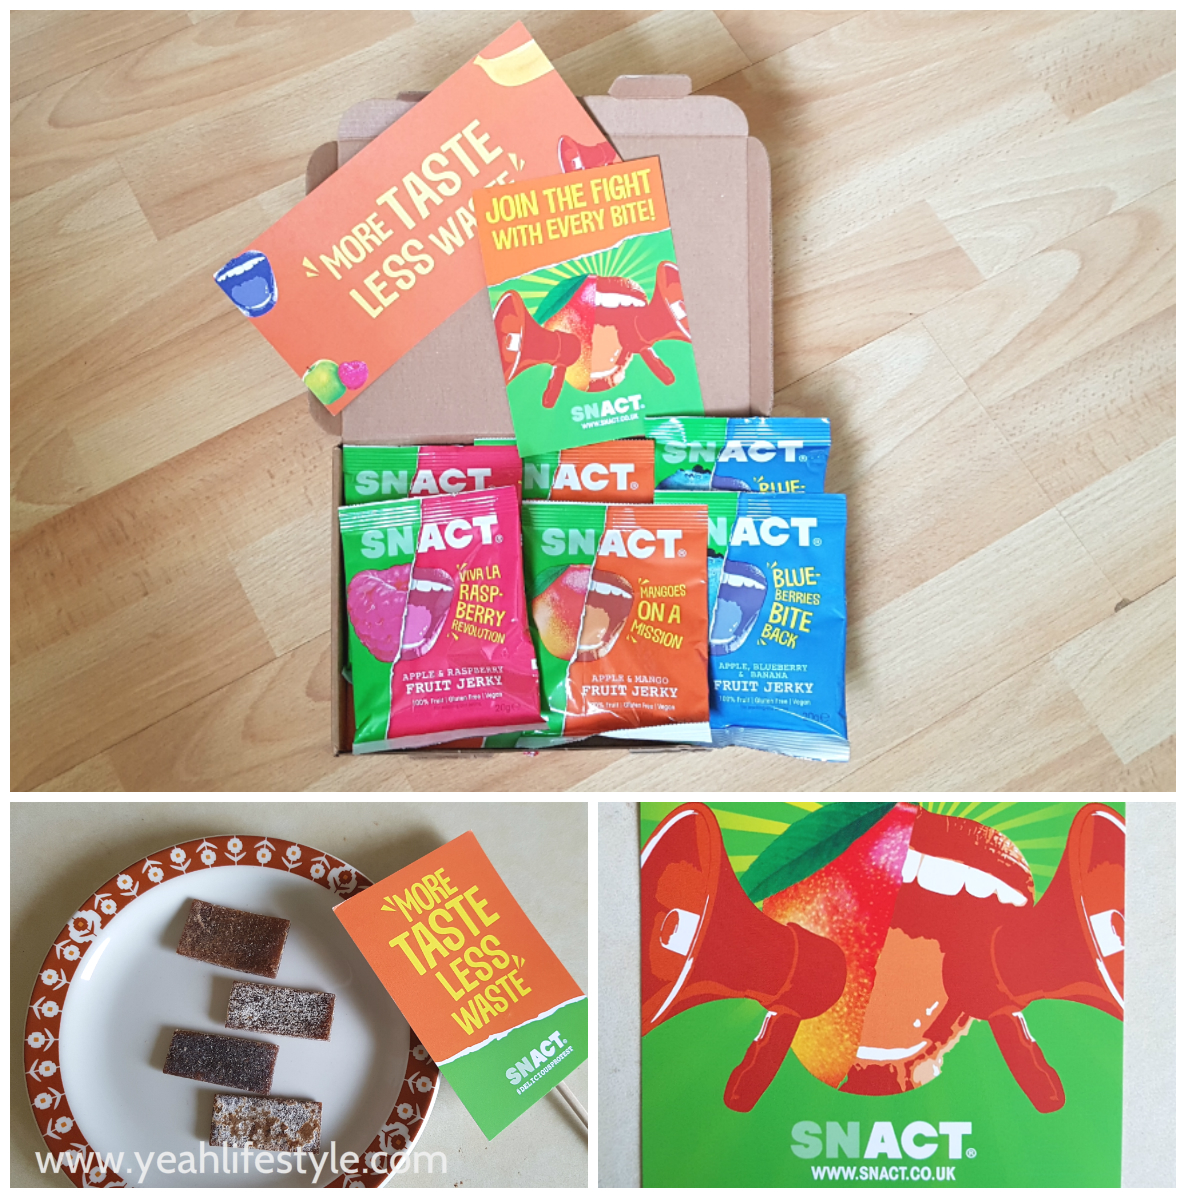 Snact-Fruit-Healthy-Jerky-Yeah-Lifestyle-Food-Blogger